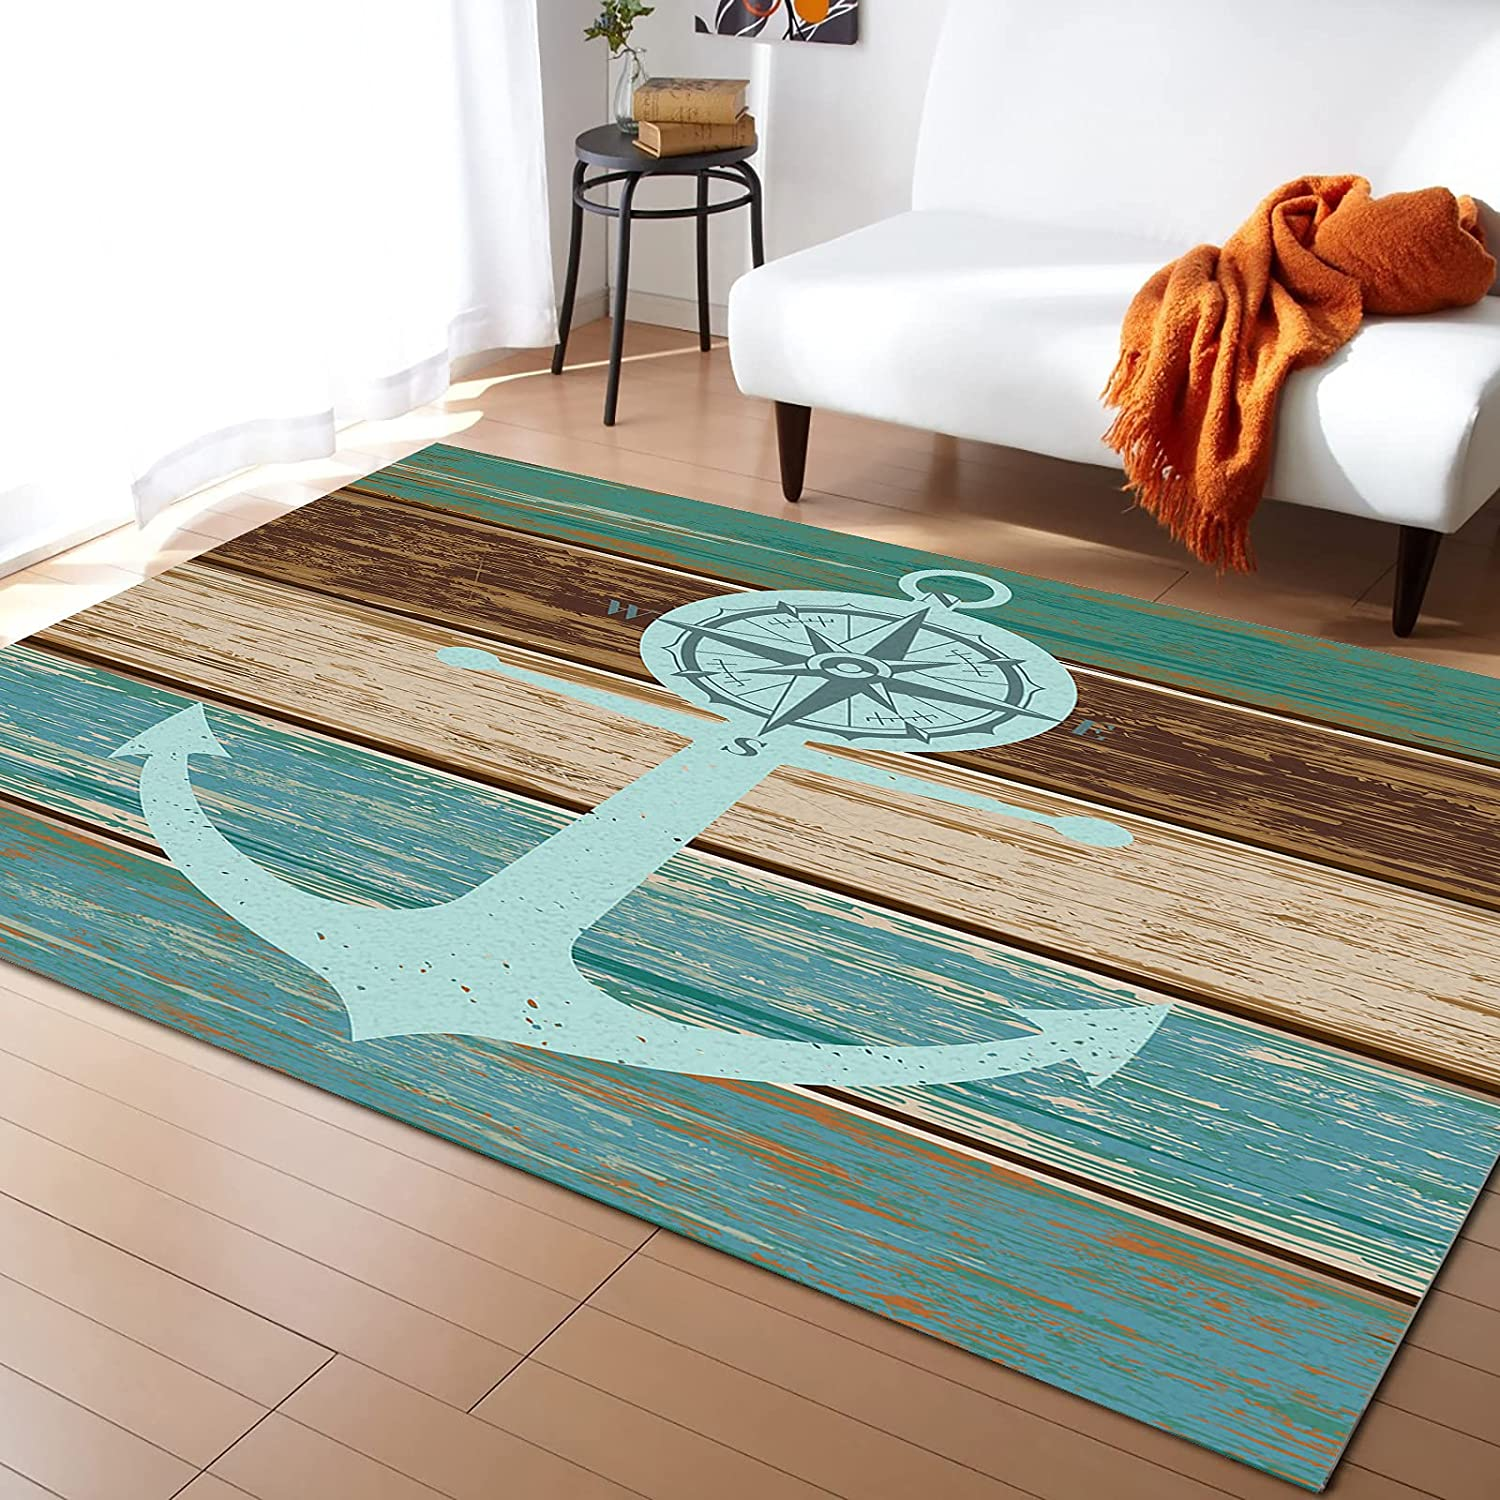 5x7 Feet Floor List price Mat Area Rug Anchor Vintag Turquoise safety Compass and